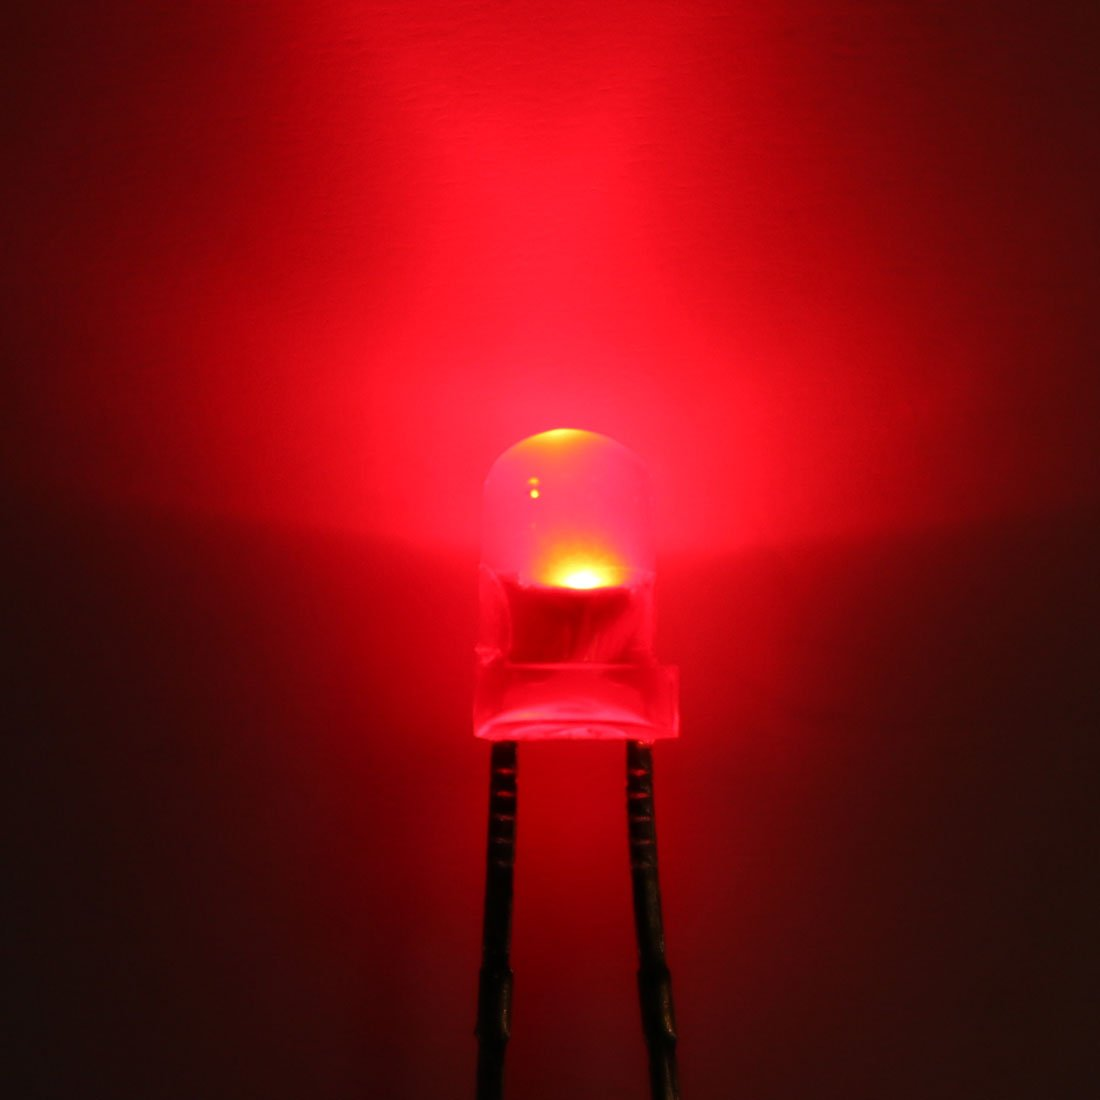 uxcell 250pcs 3mm Red LED Diode Lights Colored Lens Diffused Round DC1.8-2V 20mA Lighting Bulb Lamps Electronics Components Light Emitting Diodes